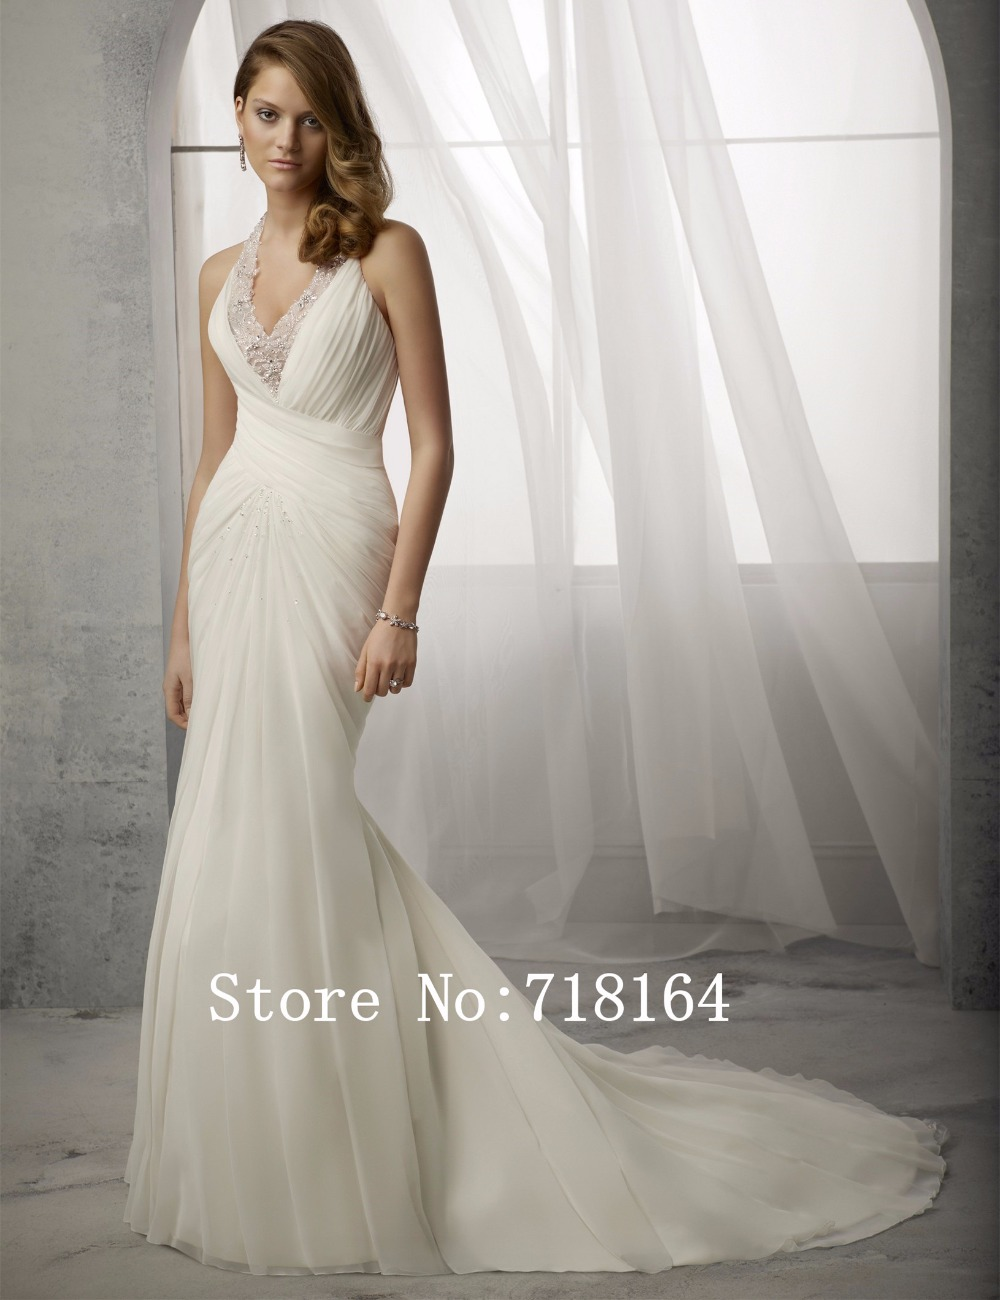 Online Get Cheap Special Wedding Gowns -Aliexpress.com   Alibaba Group